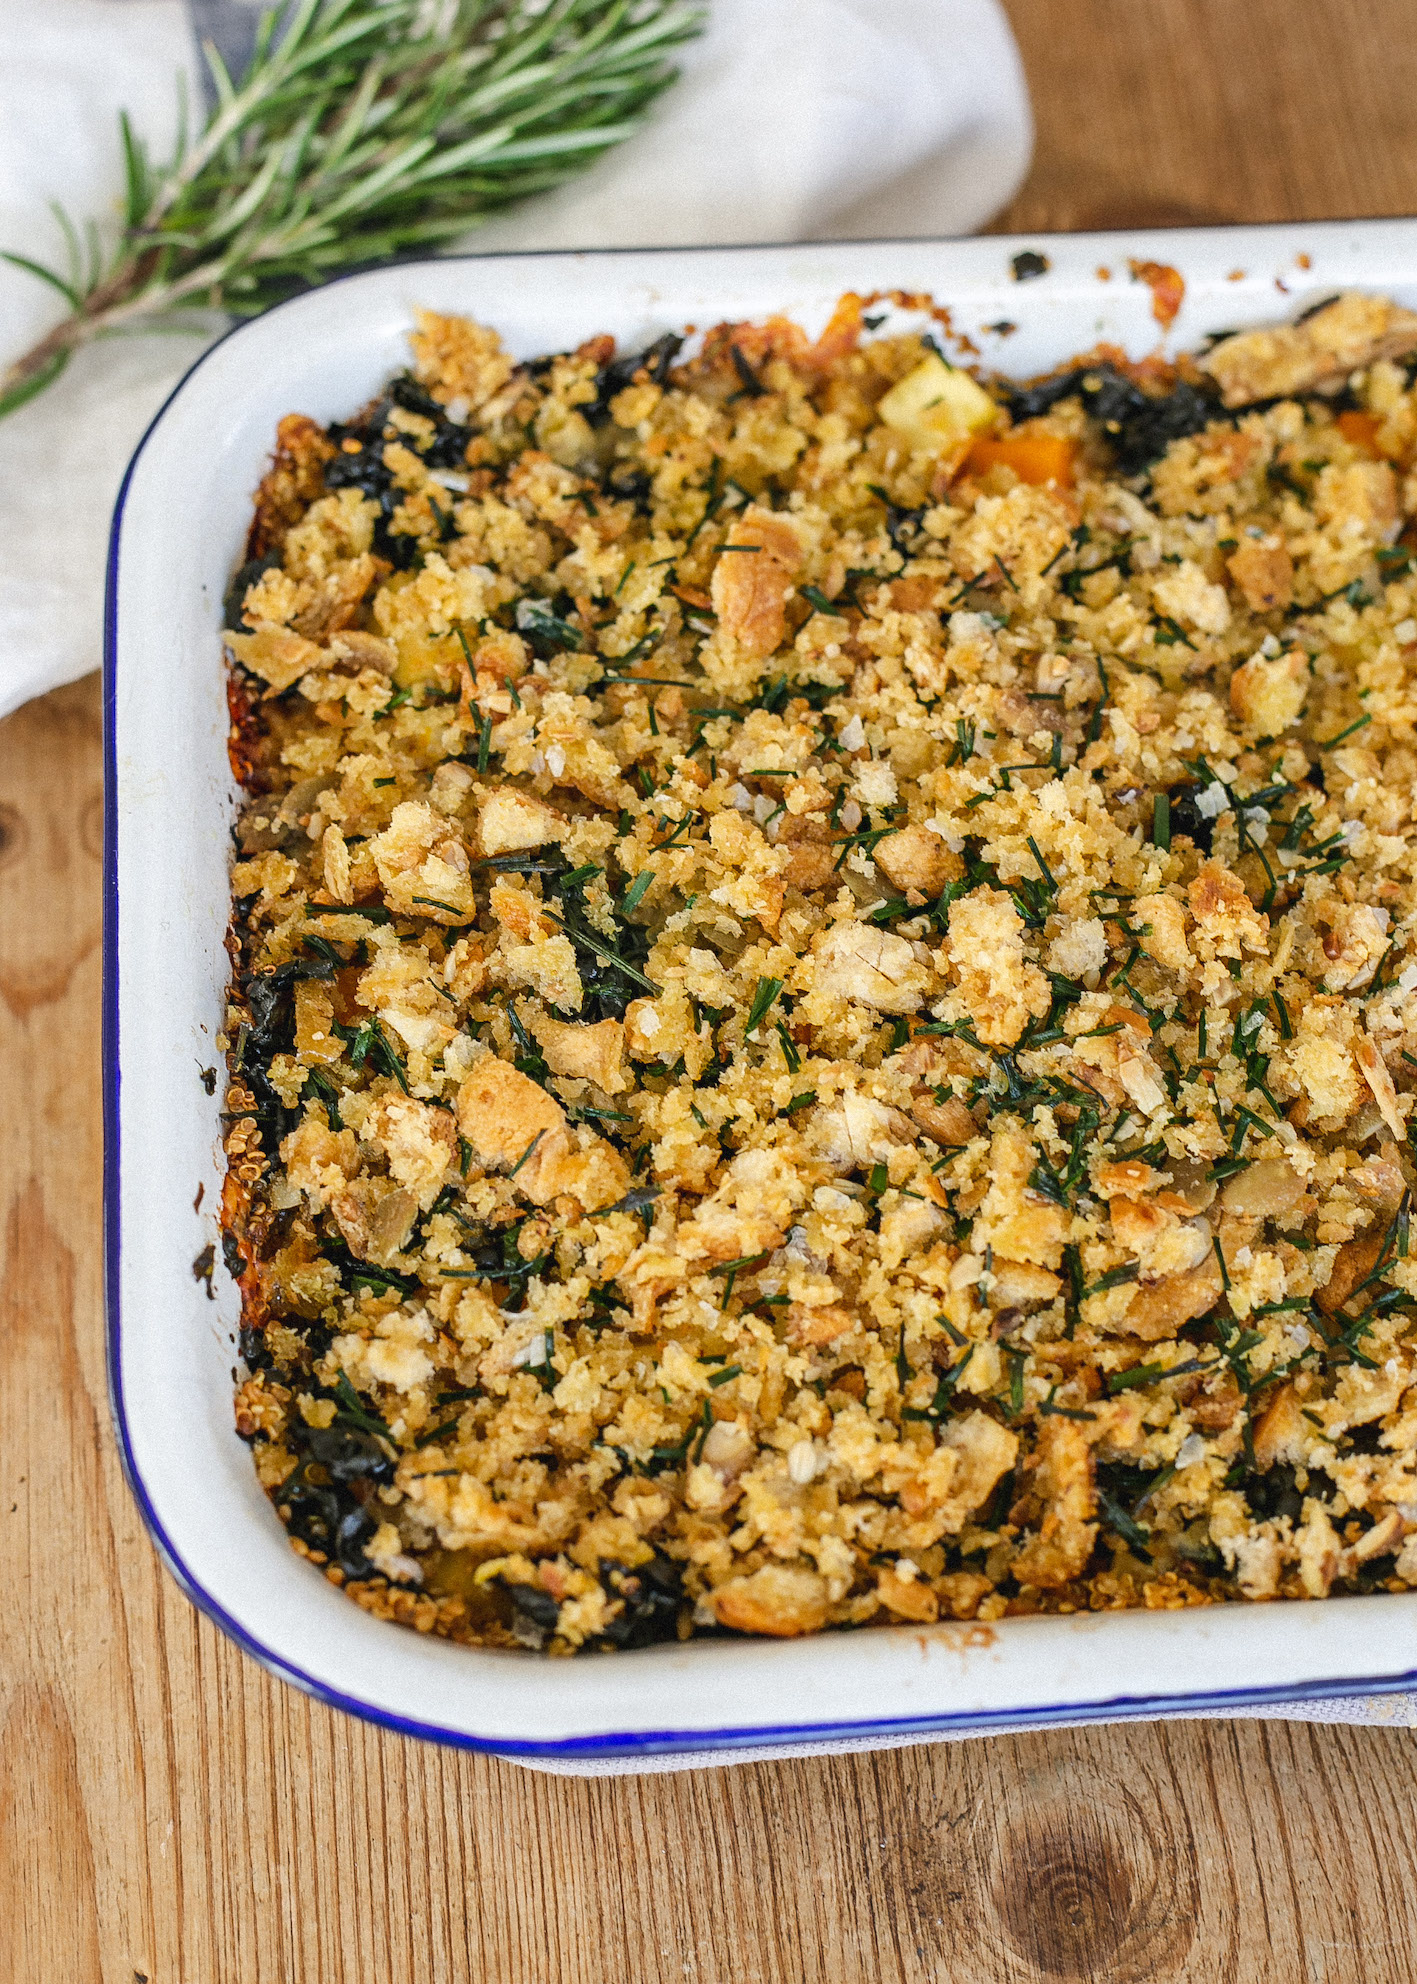 Gluten free autumn quinoa and vegetable bake